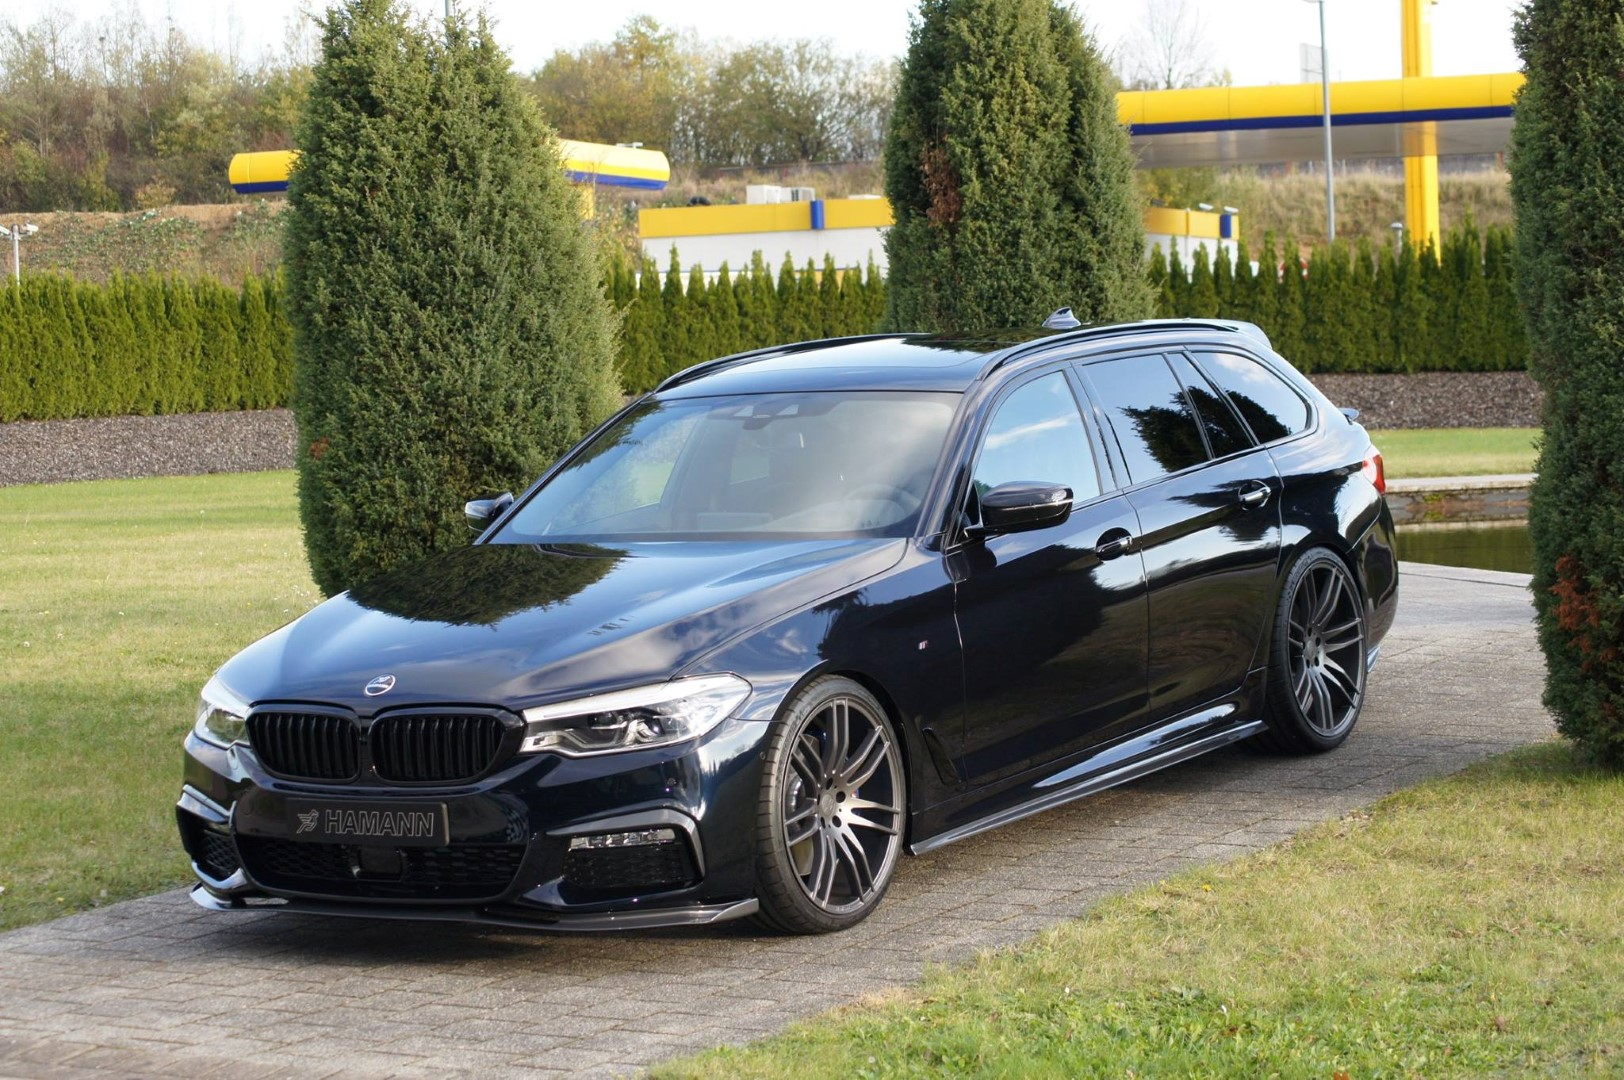 hamann bmw 5 touring ko agresije ni in ni dovolj bmwblog. Black Bedroom Furniture Sets. Home Design Ideas